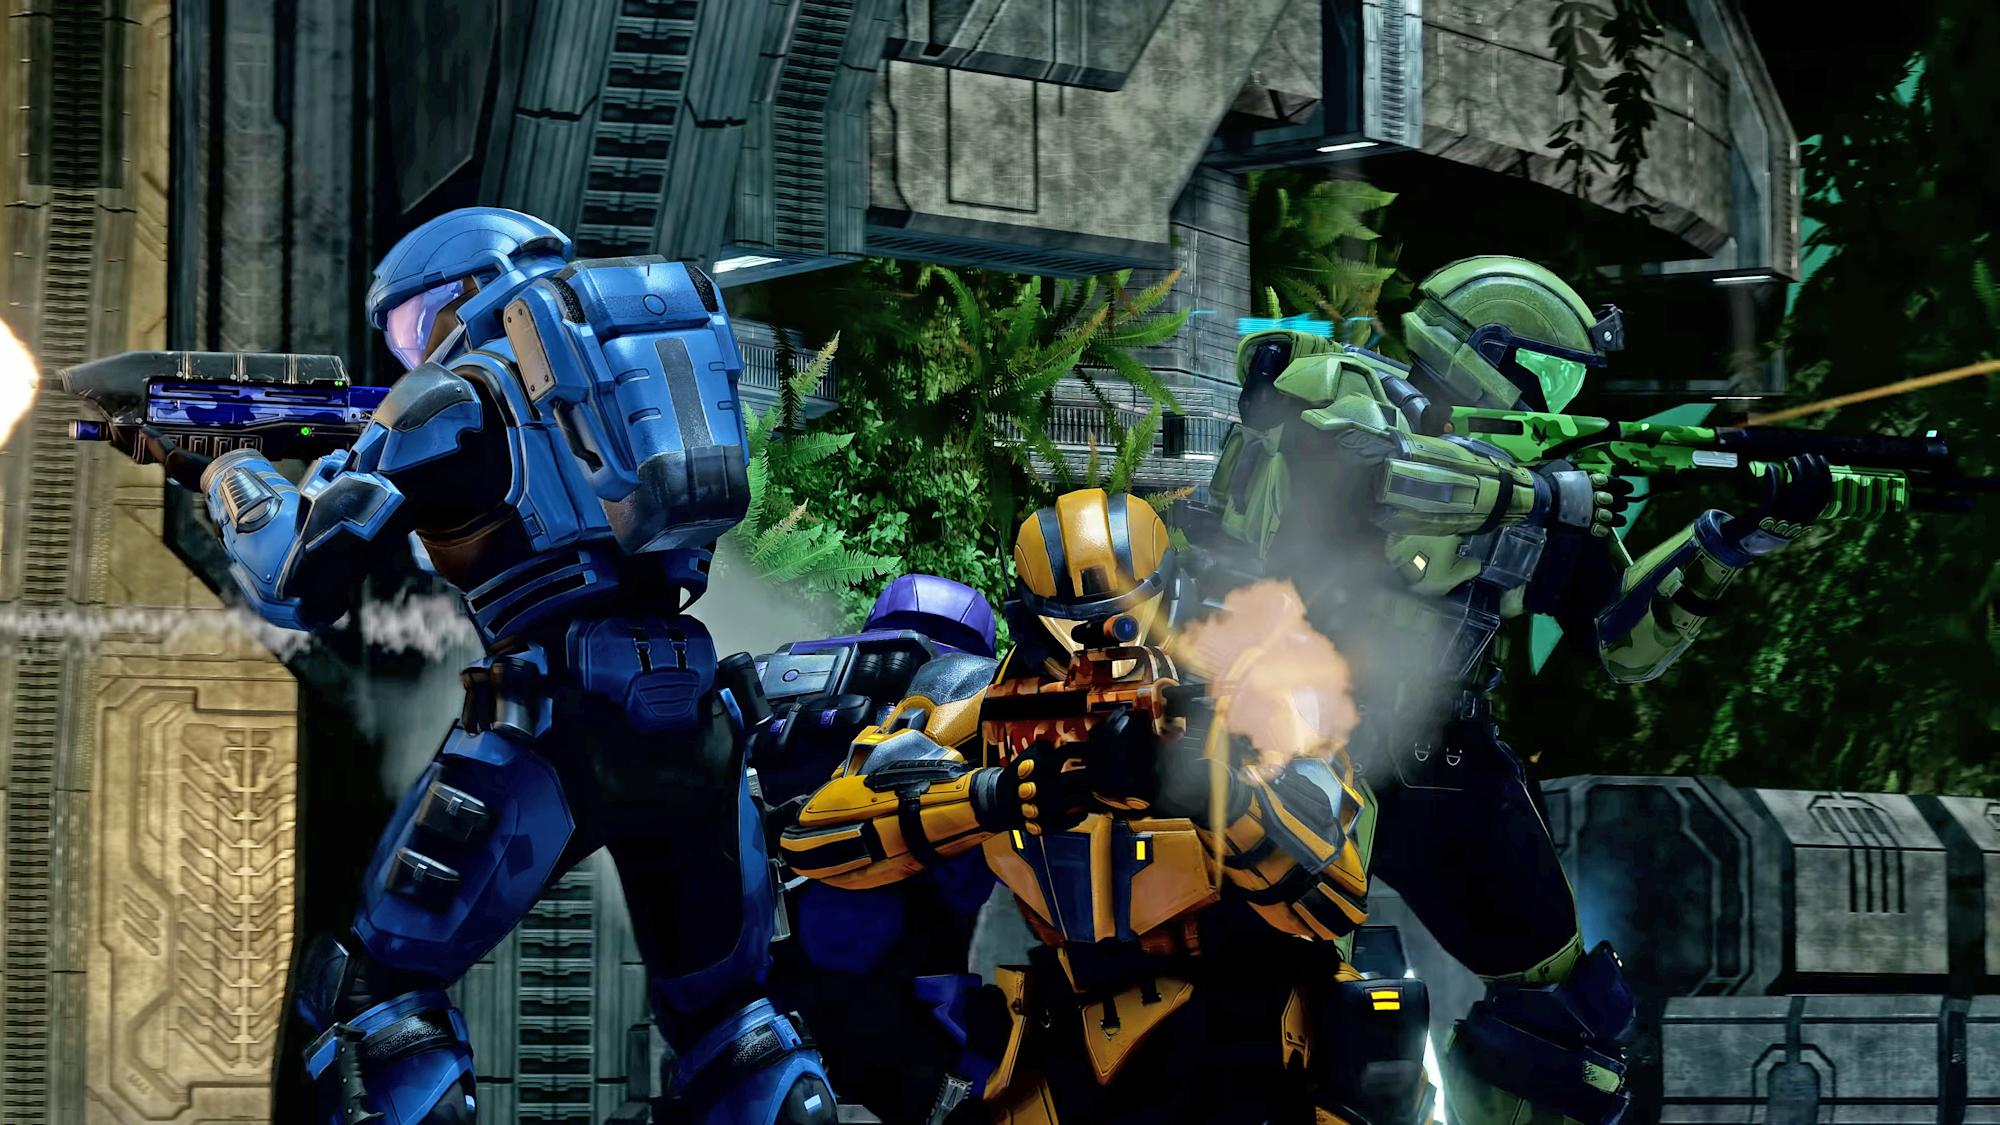 'Halo: Master Chief Collection' now supports keyboard and mouse on Xbox